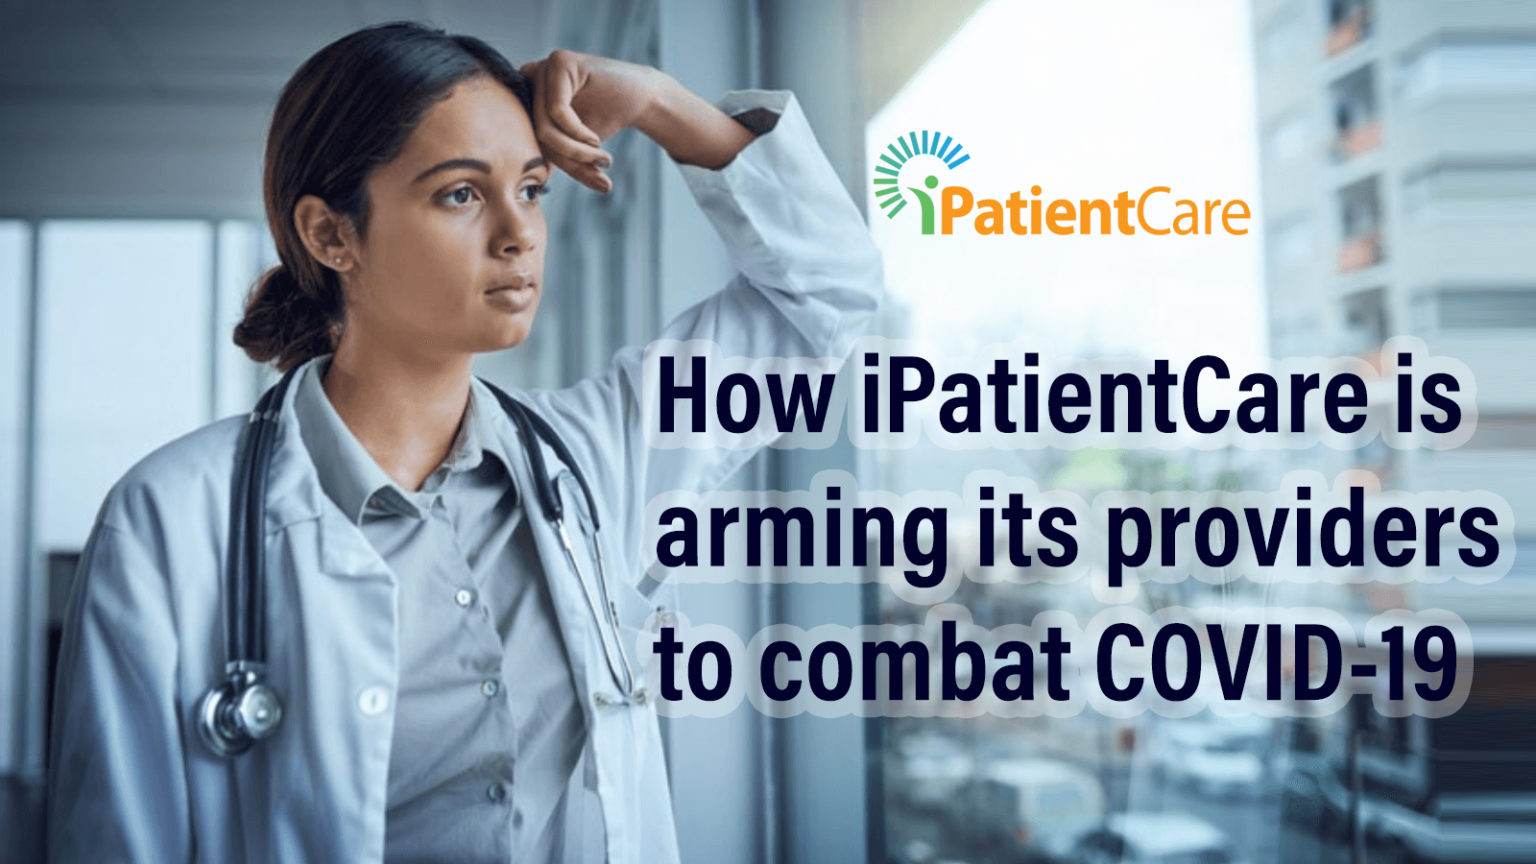 How iPatientCare is arming its providers to combat COVID-19